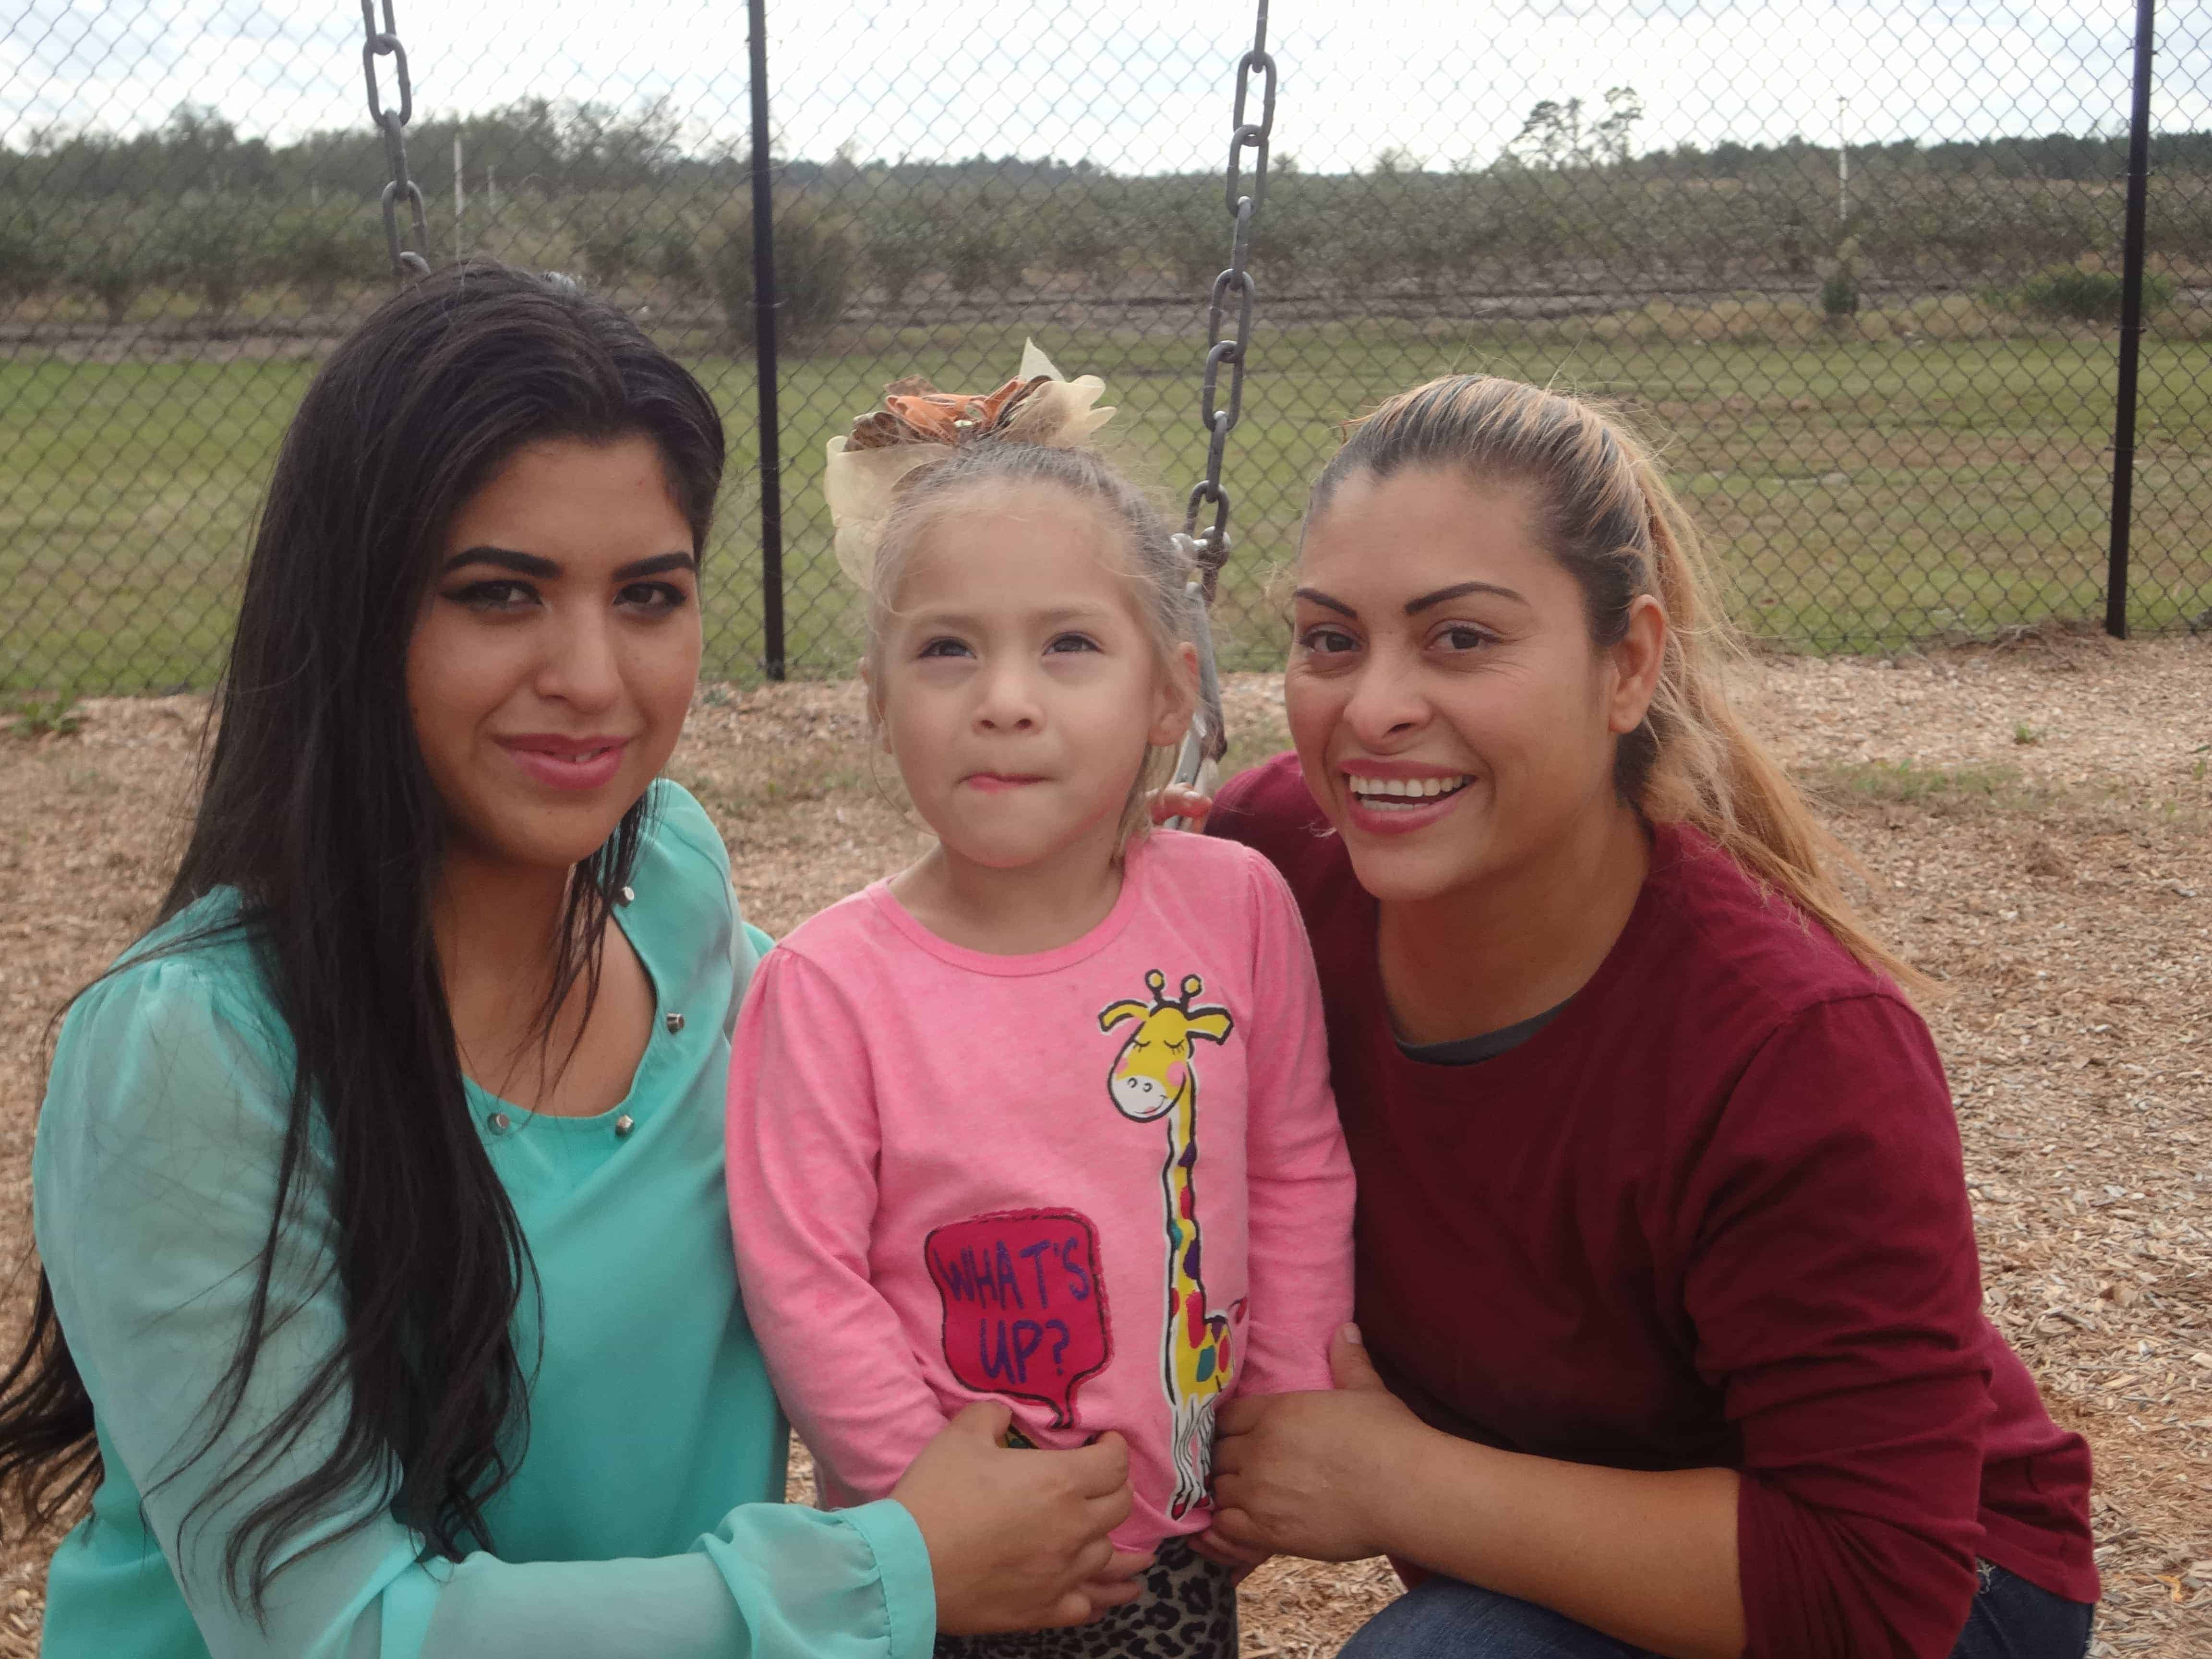 Eva Gonzalez, 3, flanked by her sister Alondra Martinez (left) and mom, Nelly Gonzalez, attends preschool at the East Coast Migrant Head Start Project center in Faison, North Carolina.